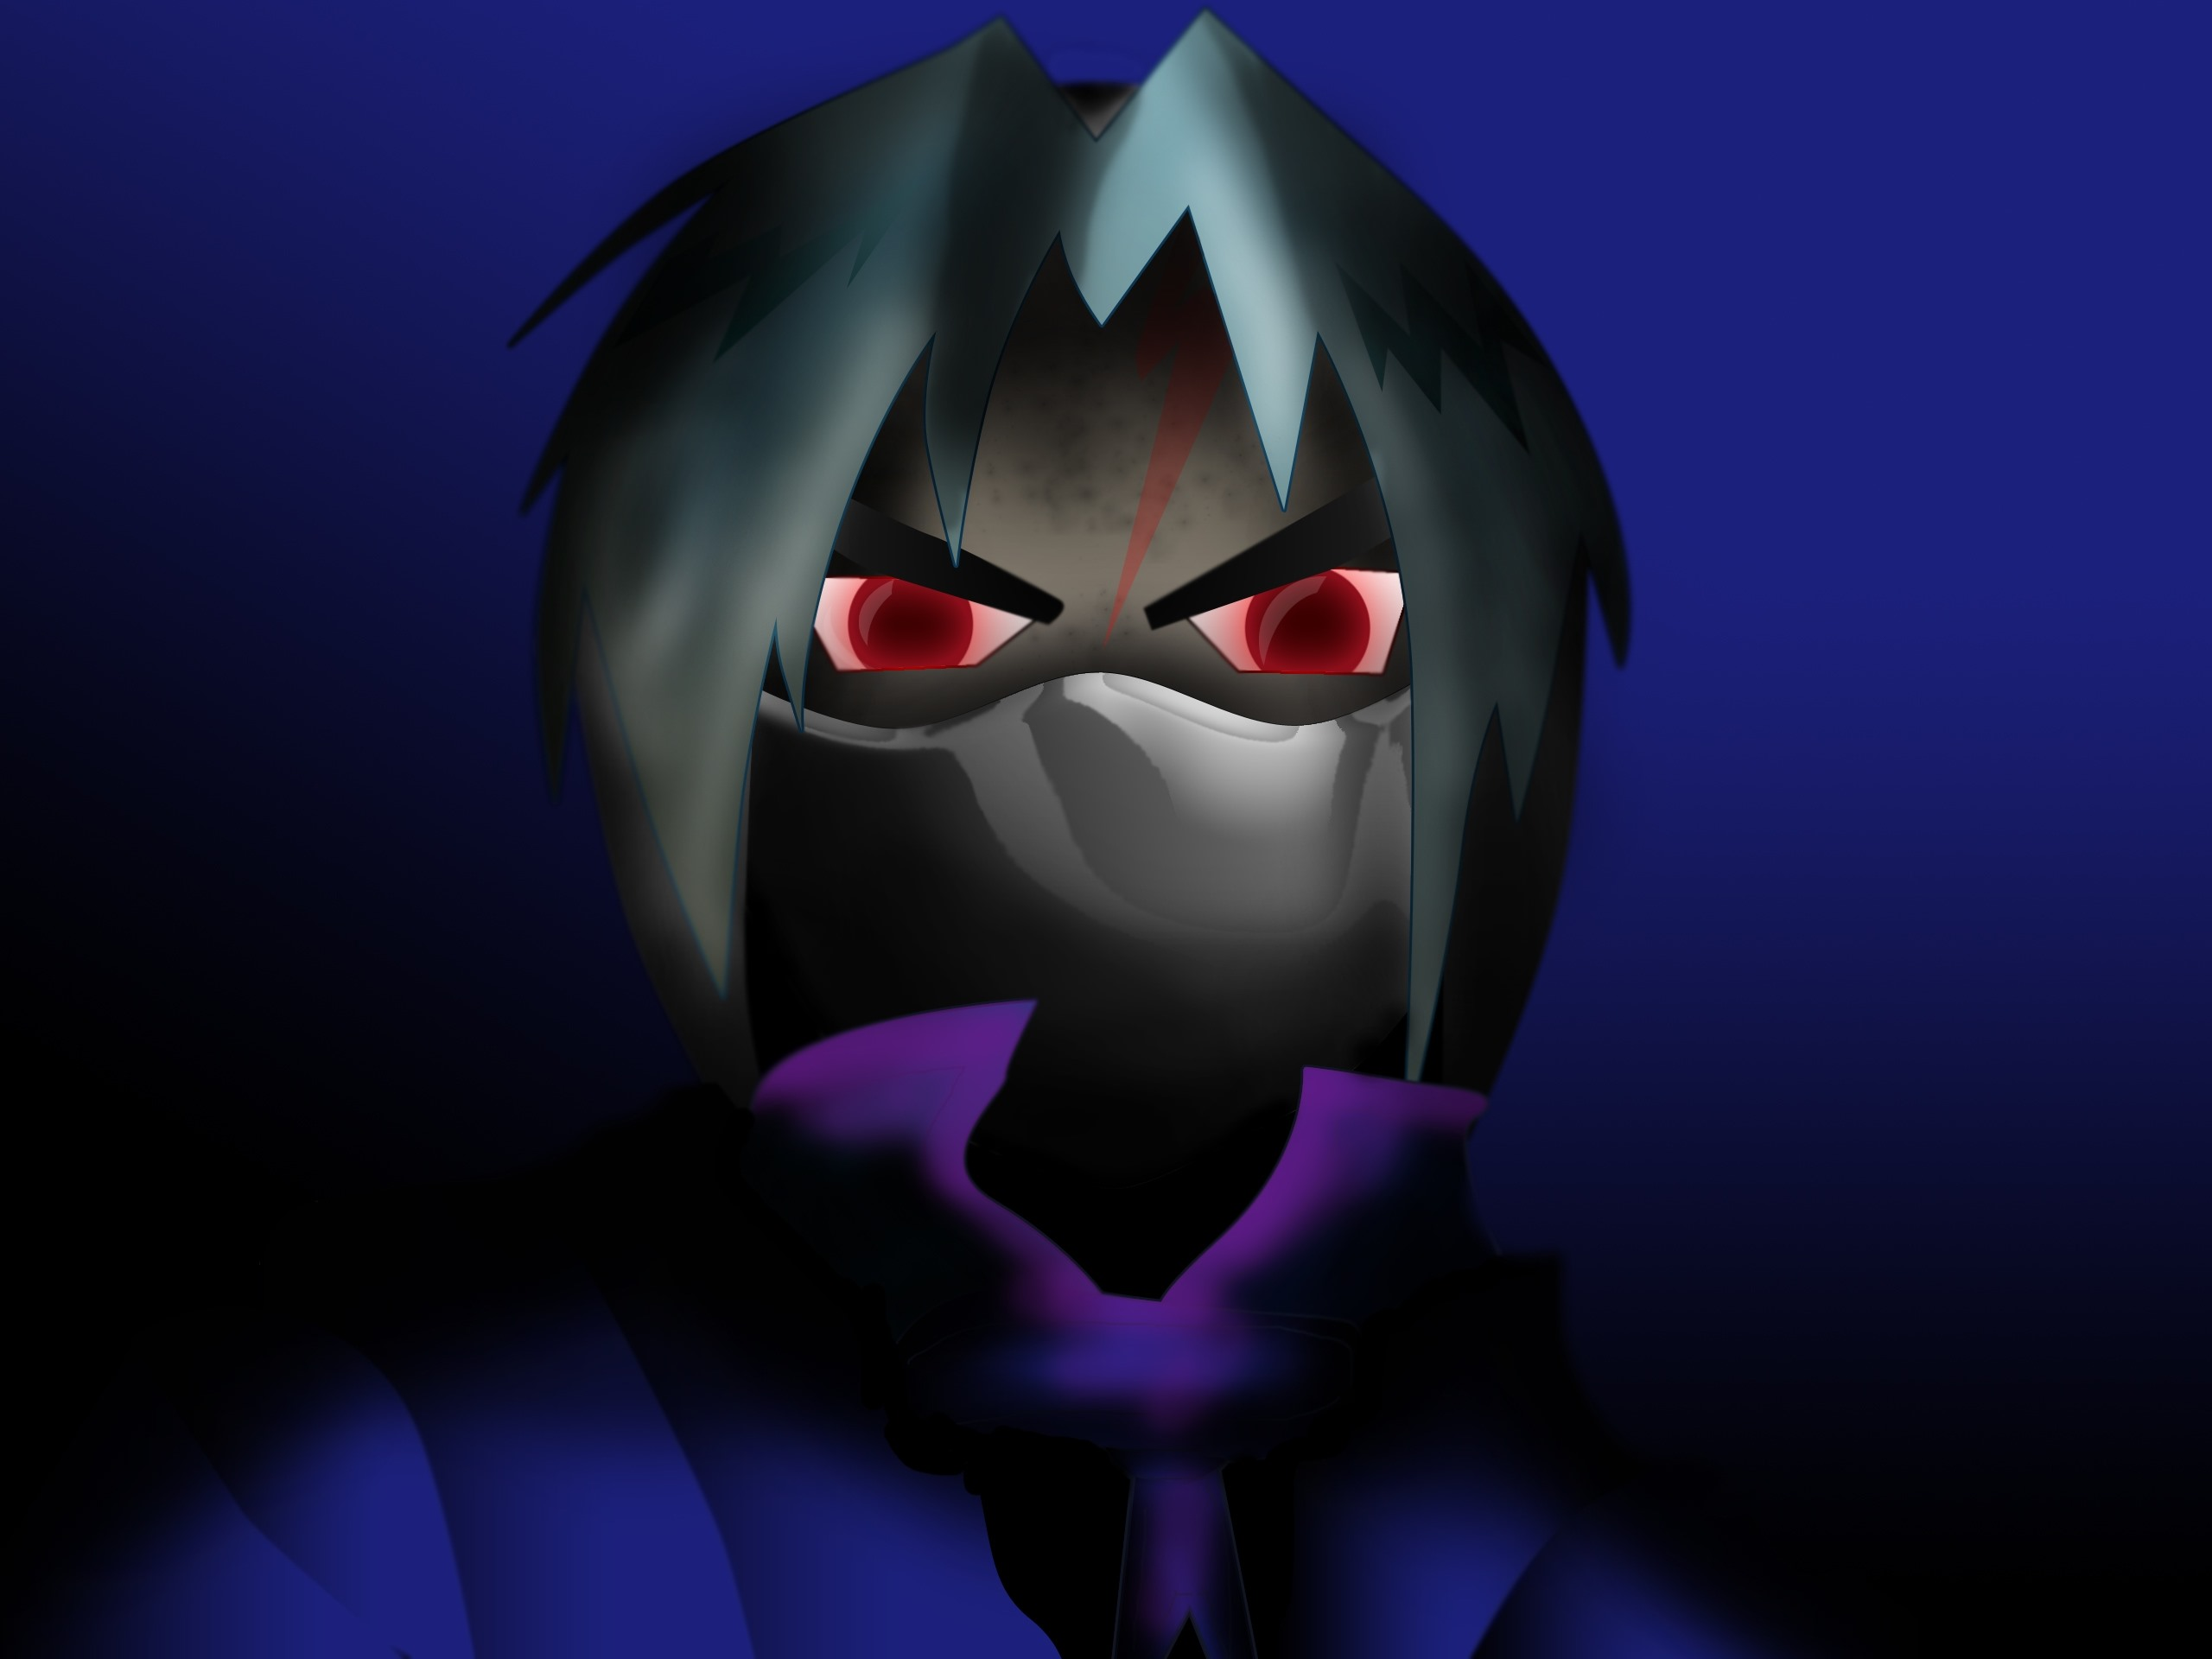 Wallpaper Anime Boy Red Eyes Horror 2560x1920 Hd Picture